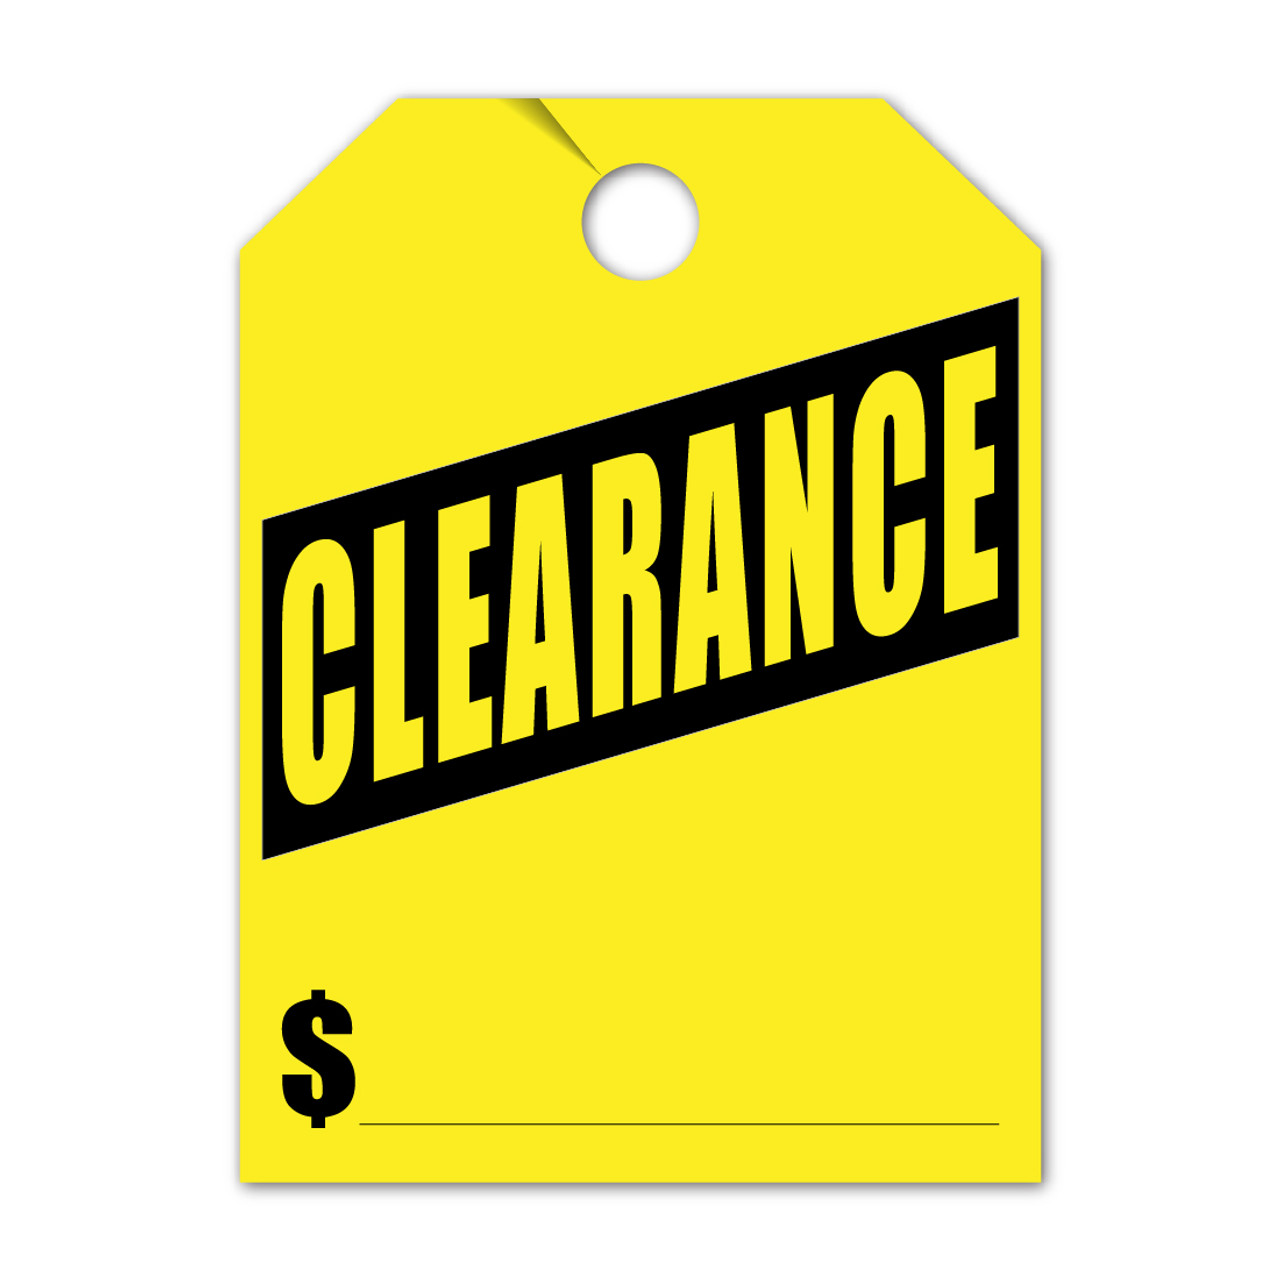 Clearance Mirror Hang Tag 8.5 X 11.5 (VT-#280- CL)